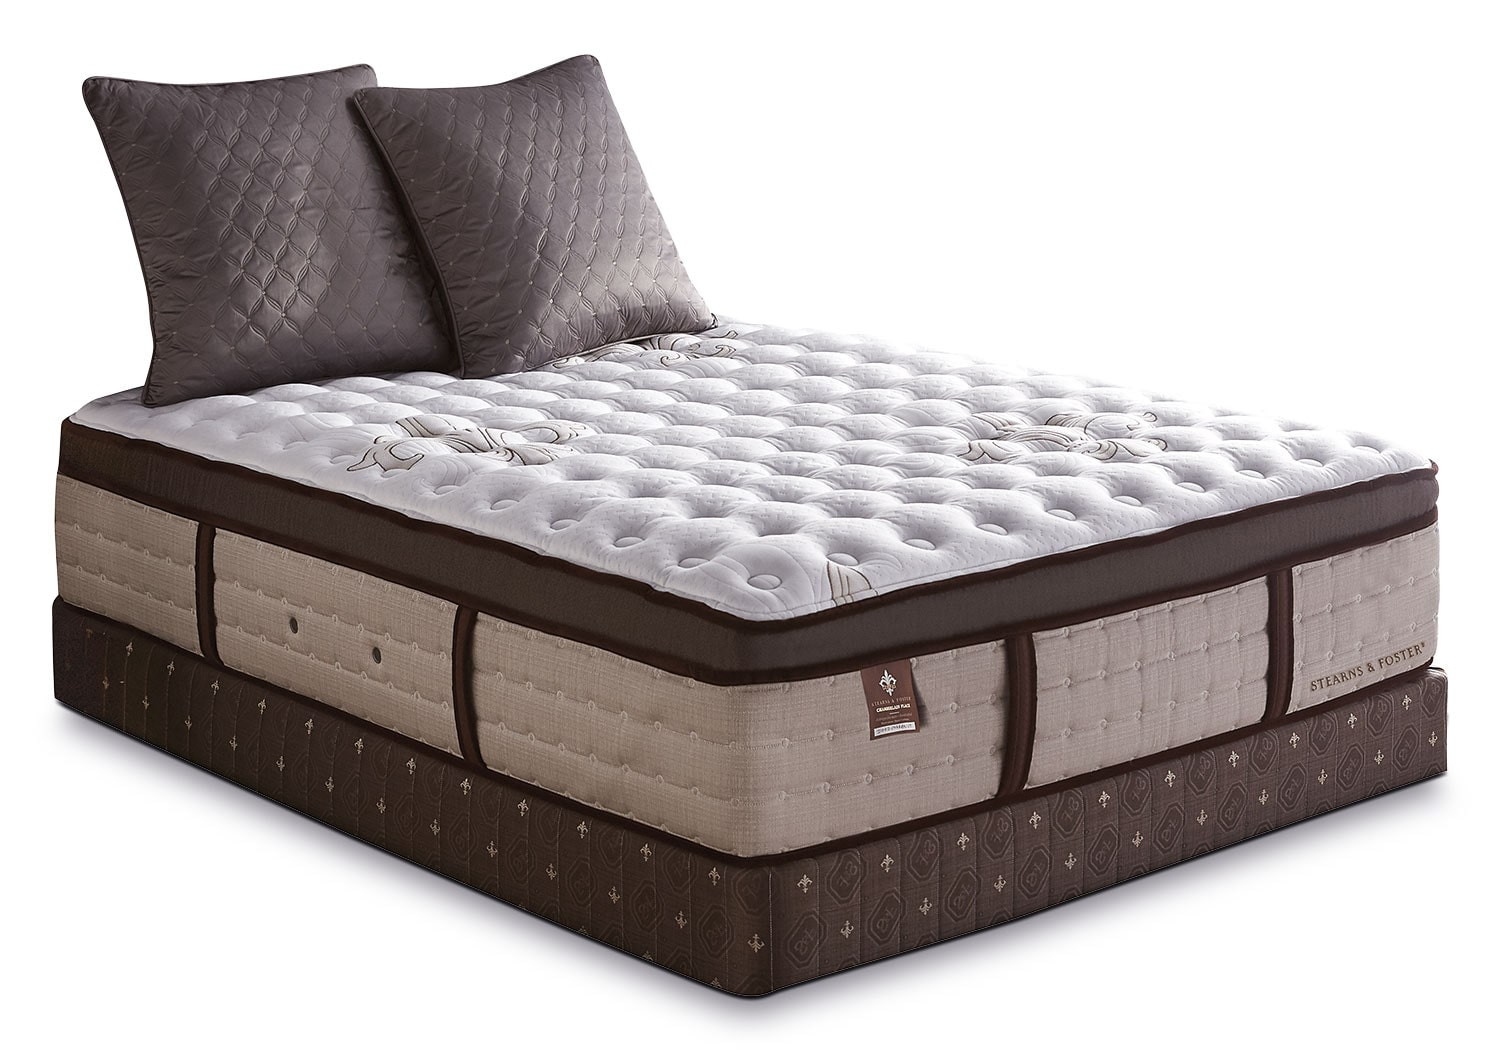 Stearns & Foster Chamberlain Place Euro-Top Plush Full Mattress Set